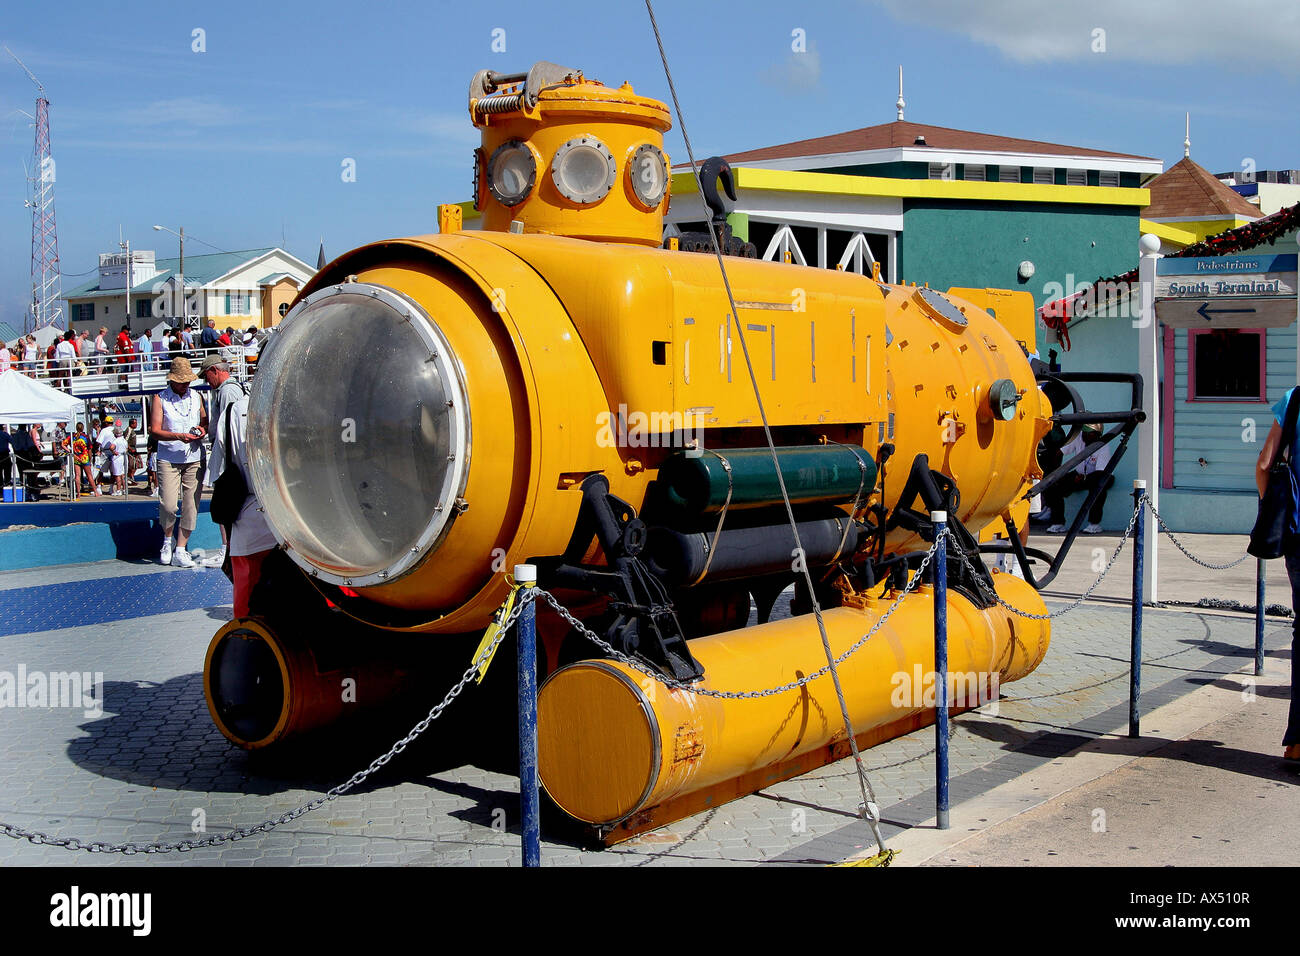 ocean-research-submarine-draws-attention-from-tourists-on-dock-in-AX510R.jpg